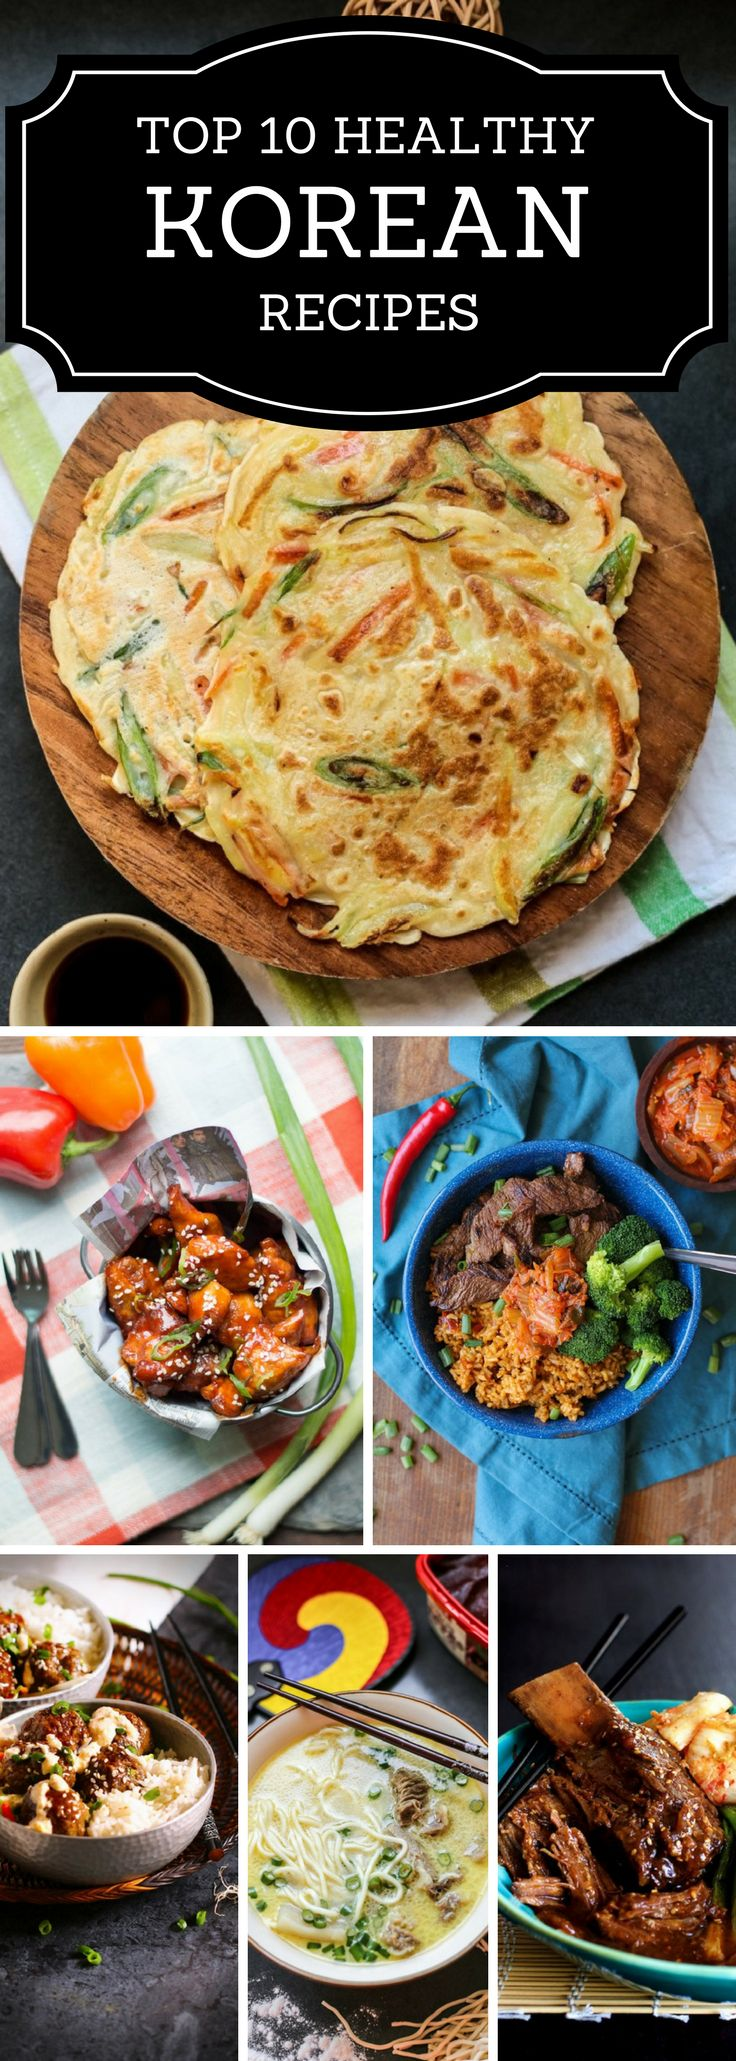 11072 best korean food recipes images on pinterest korean food healthy korean recipes koreanfoodrecipes forumfinder Image collections